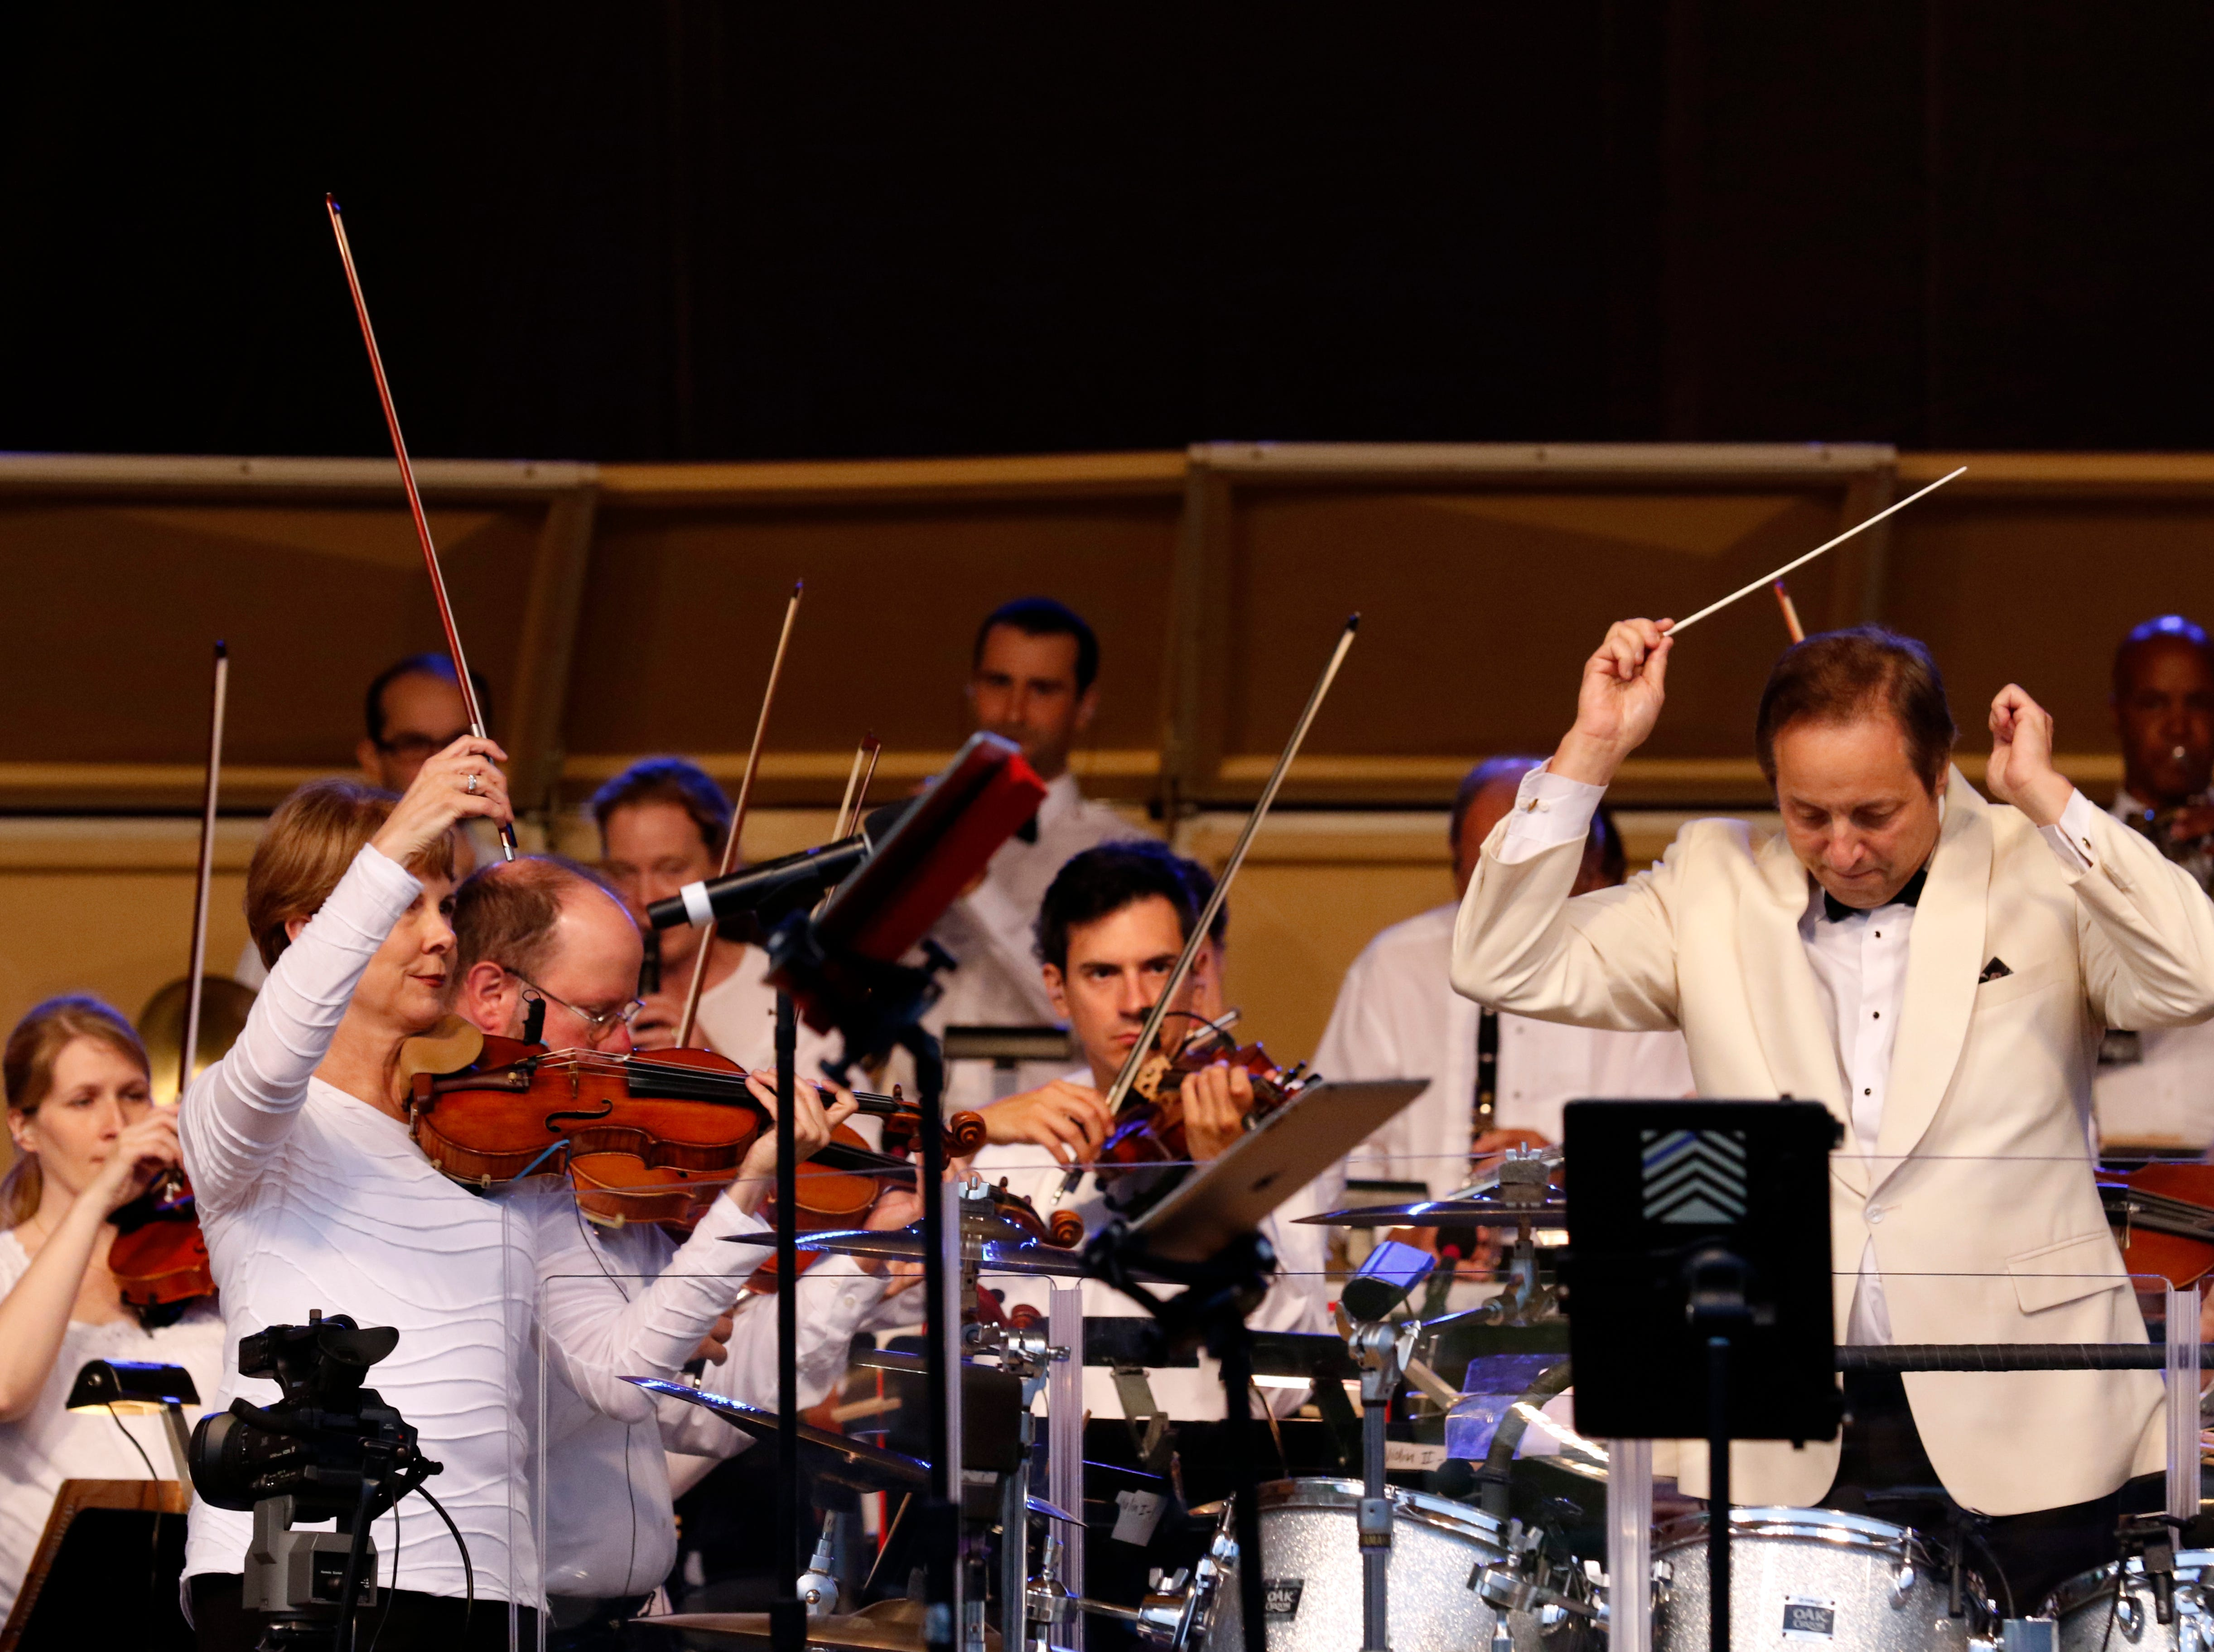 The Lancaster Festival Orchestra performed Saturday night, July 21, 2018, at the Ohio University Lancaster Wendel Concert Stage in Lancaster.